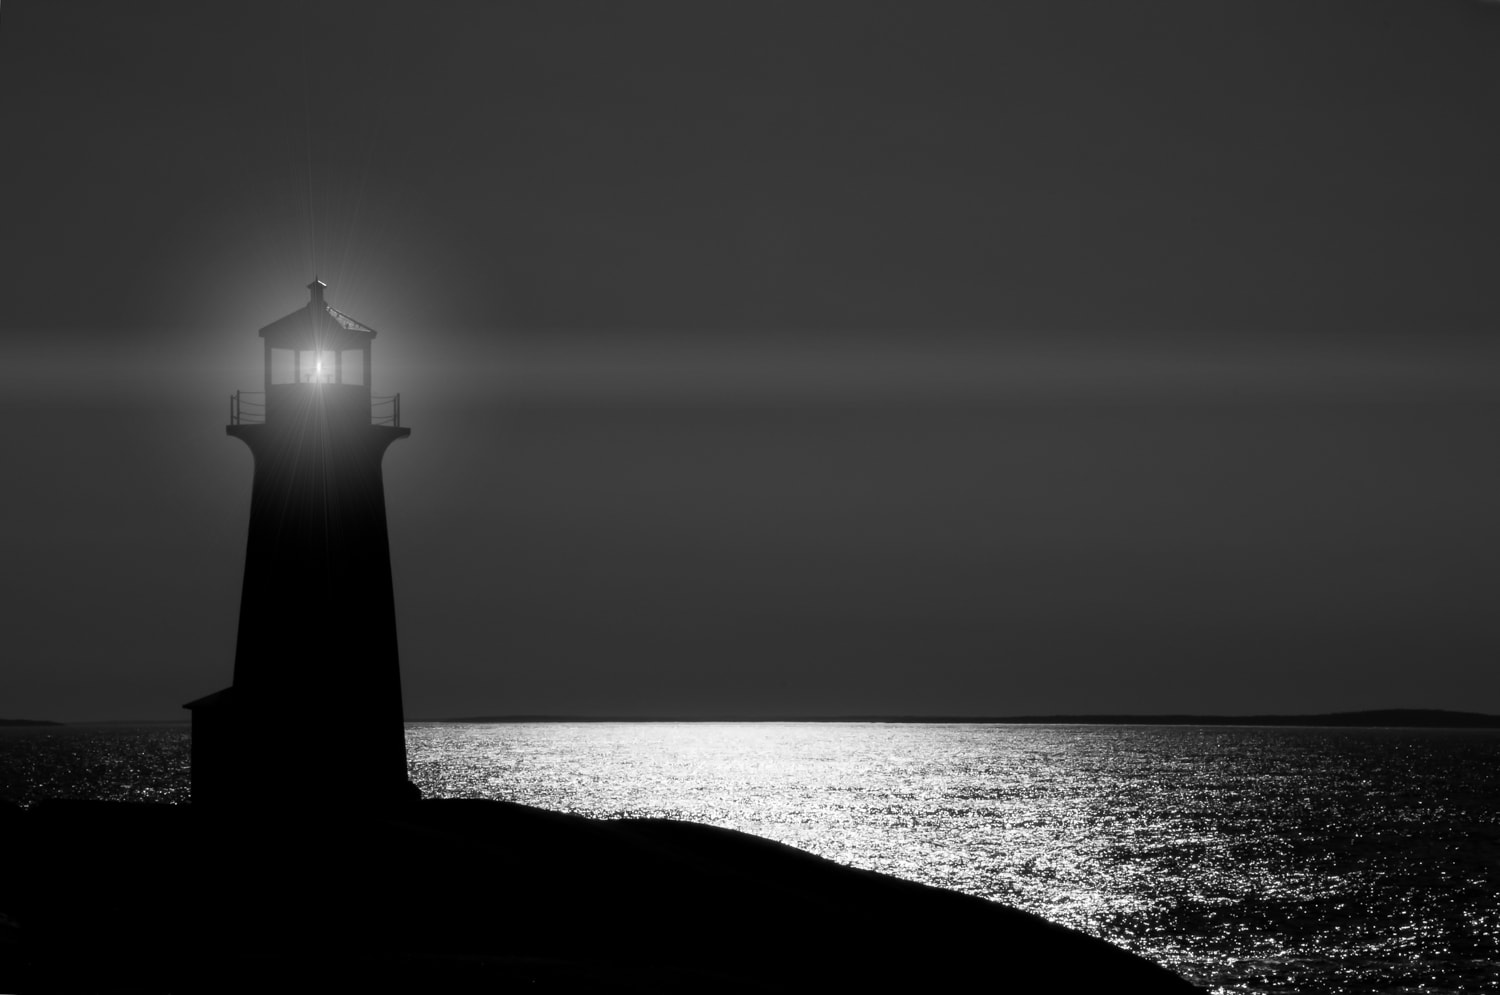 halifax photographer, peggys cove lighthouse, night photography, ocean, sea, lighthouse, nova scotia, fine art